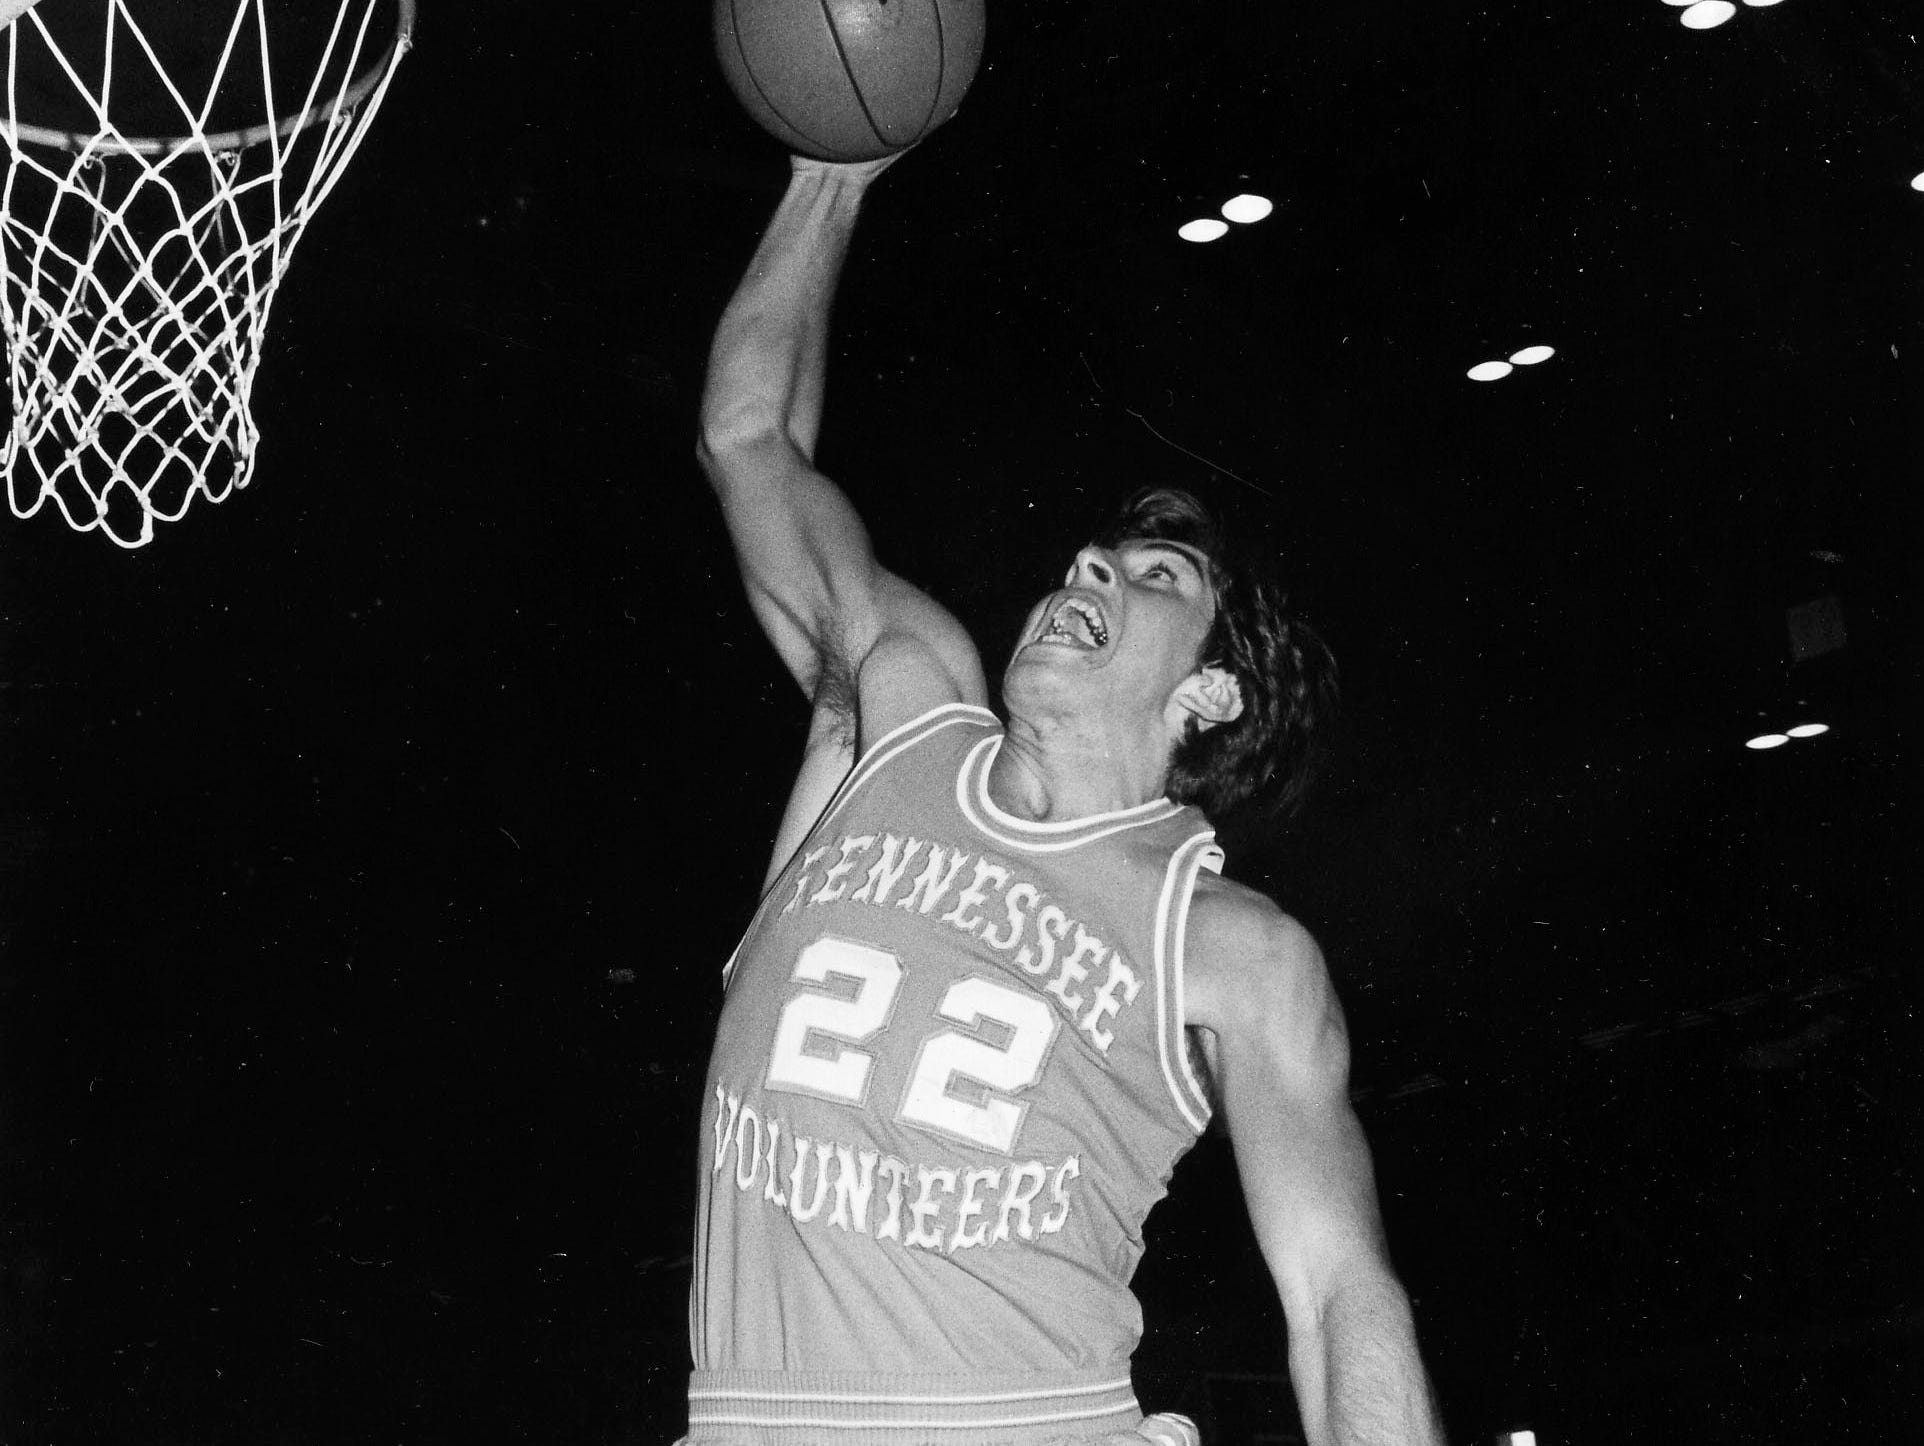 University of Tennessee basketball player Ernie Grunfield attempts a basket in a Nov. 11, 1973, game. (KNS Archive)